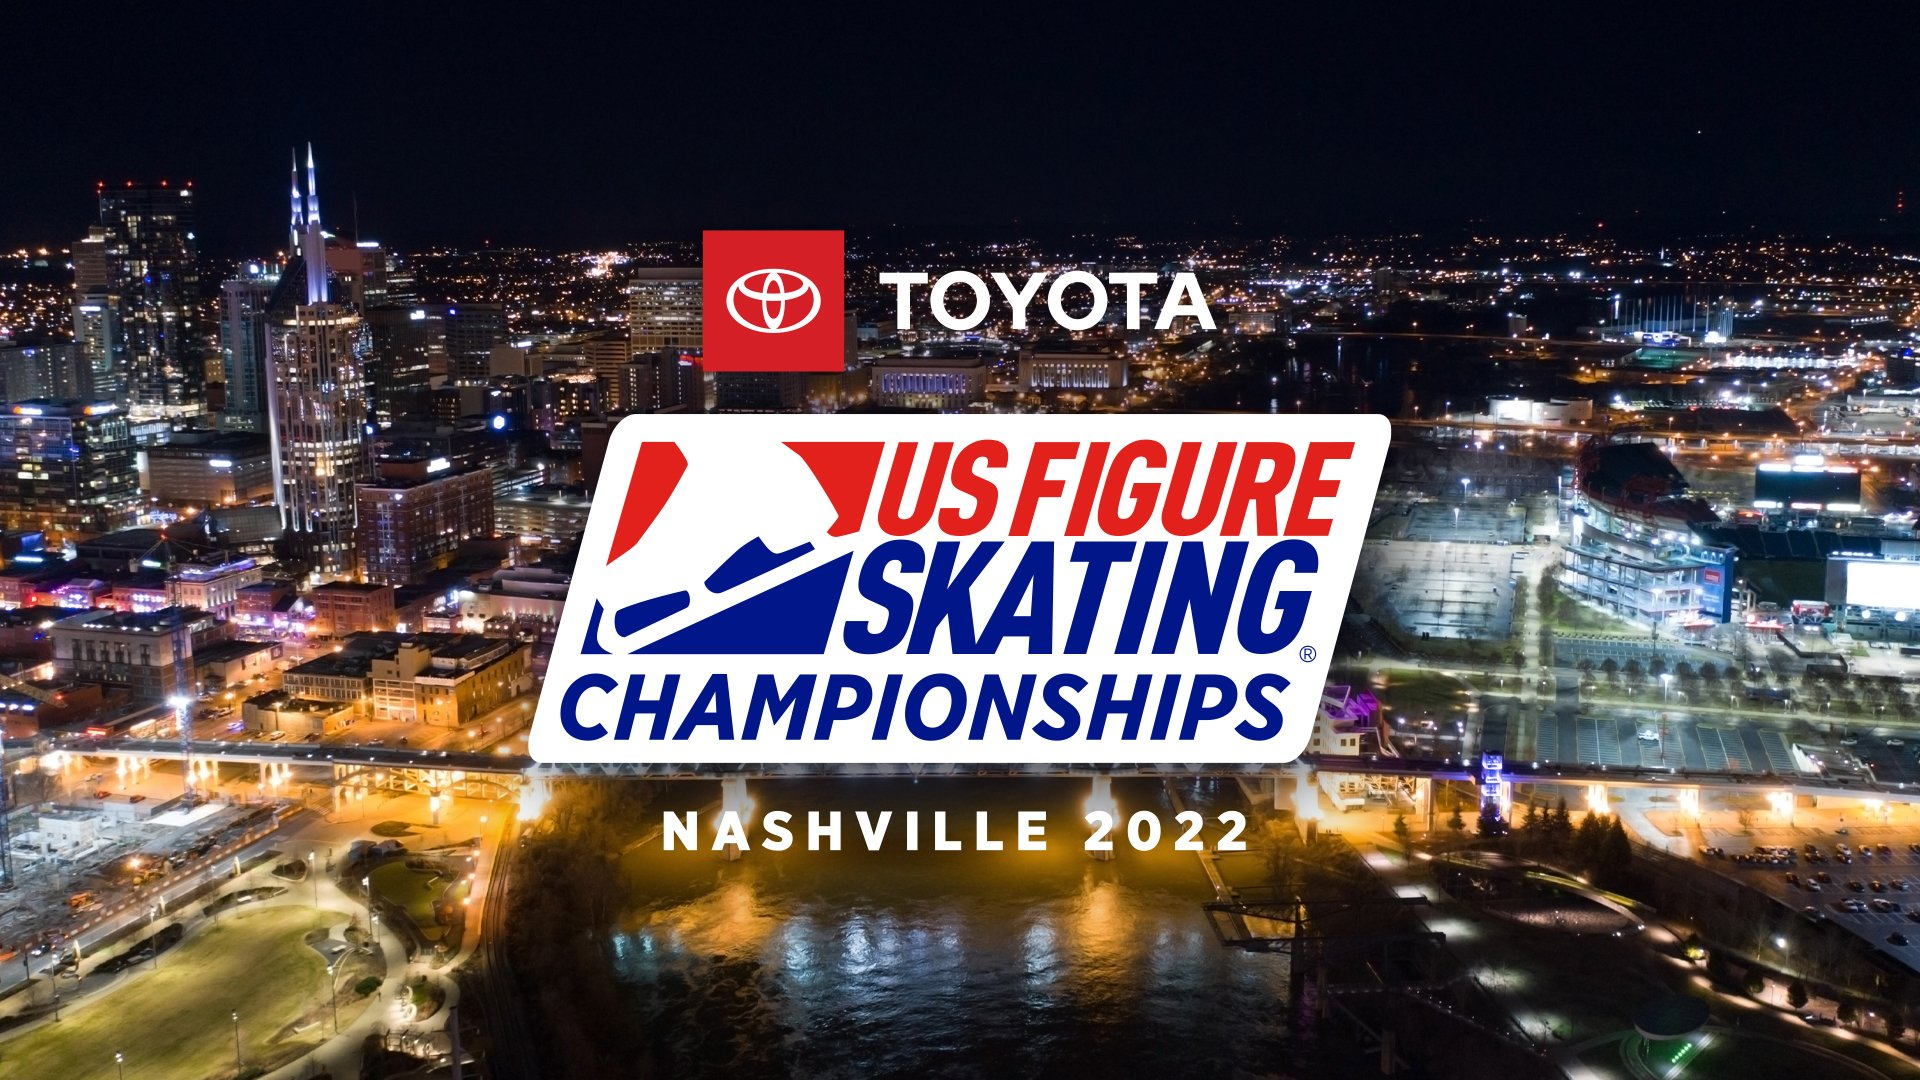 The 2022 Toyota U.S. Figure Skating Championships logo on top of a night time skyline picture of Nashville